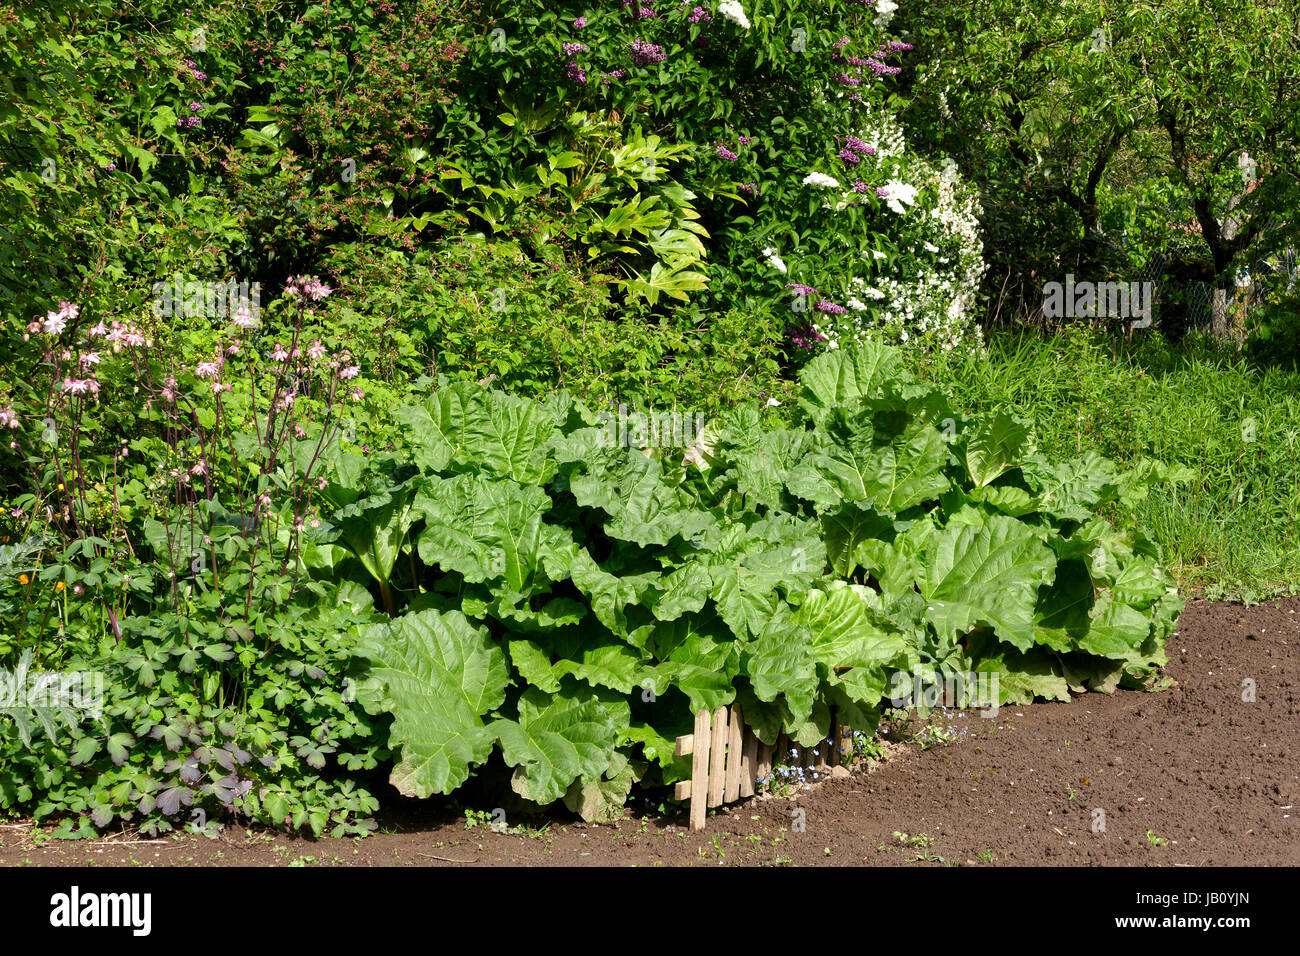 Rhubarb (Rheum rhabarbarum) in front of a flowering hedge, in may (Suzanne's vegetable garden, Le Pas, Mayenne, - Stock Image